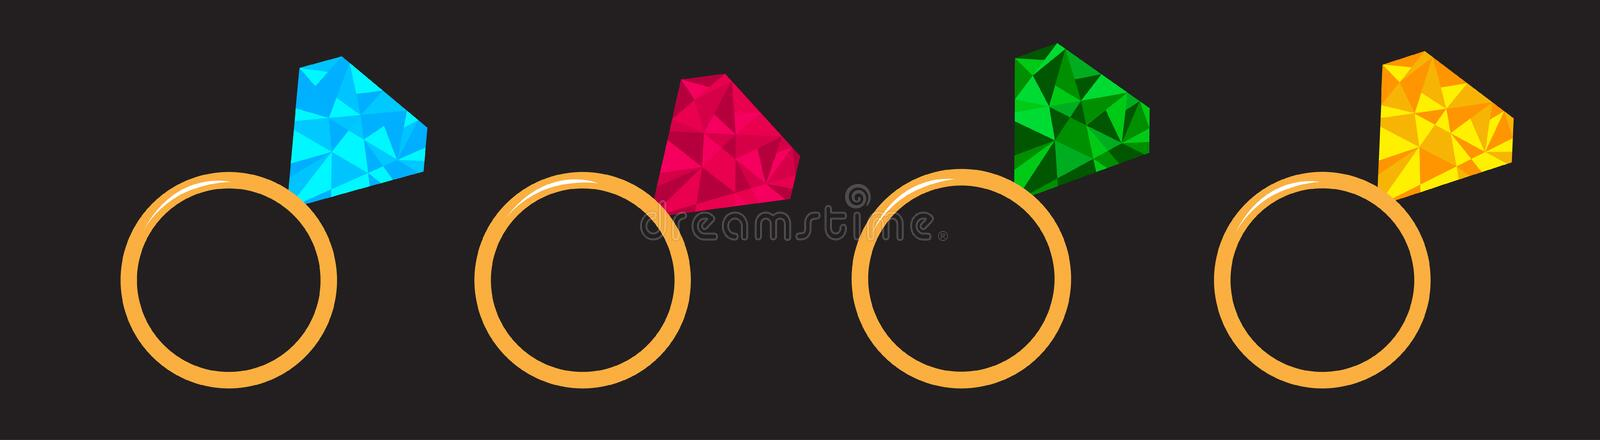 Wedding gold diamond ring set line. Polygonal effect. Blue, pink, green, yellow color. Flat design. Love wedding atribute. Black. Background. Isolated. Vector royalty free illustration